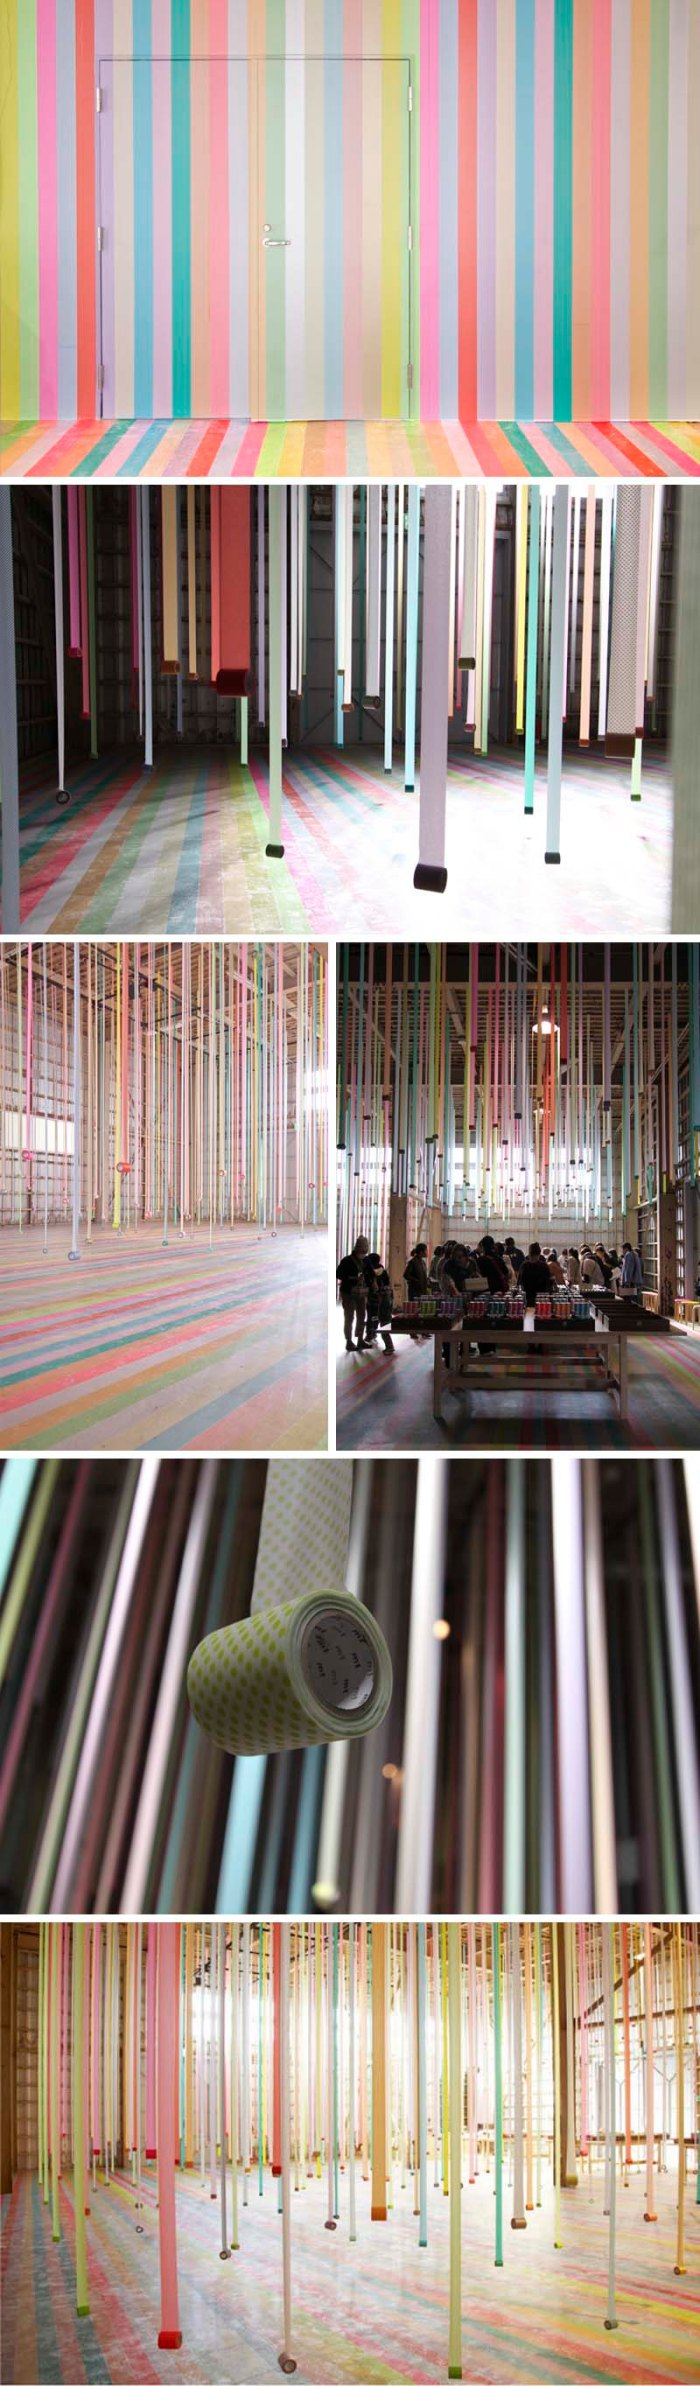 Koji Iyama, Iyama Design, colorful masking tape installation for mt tape in Sendai, Japan